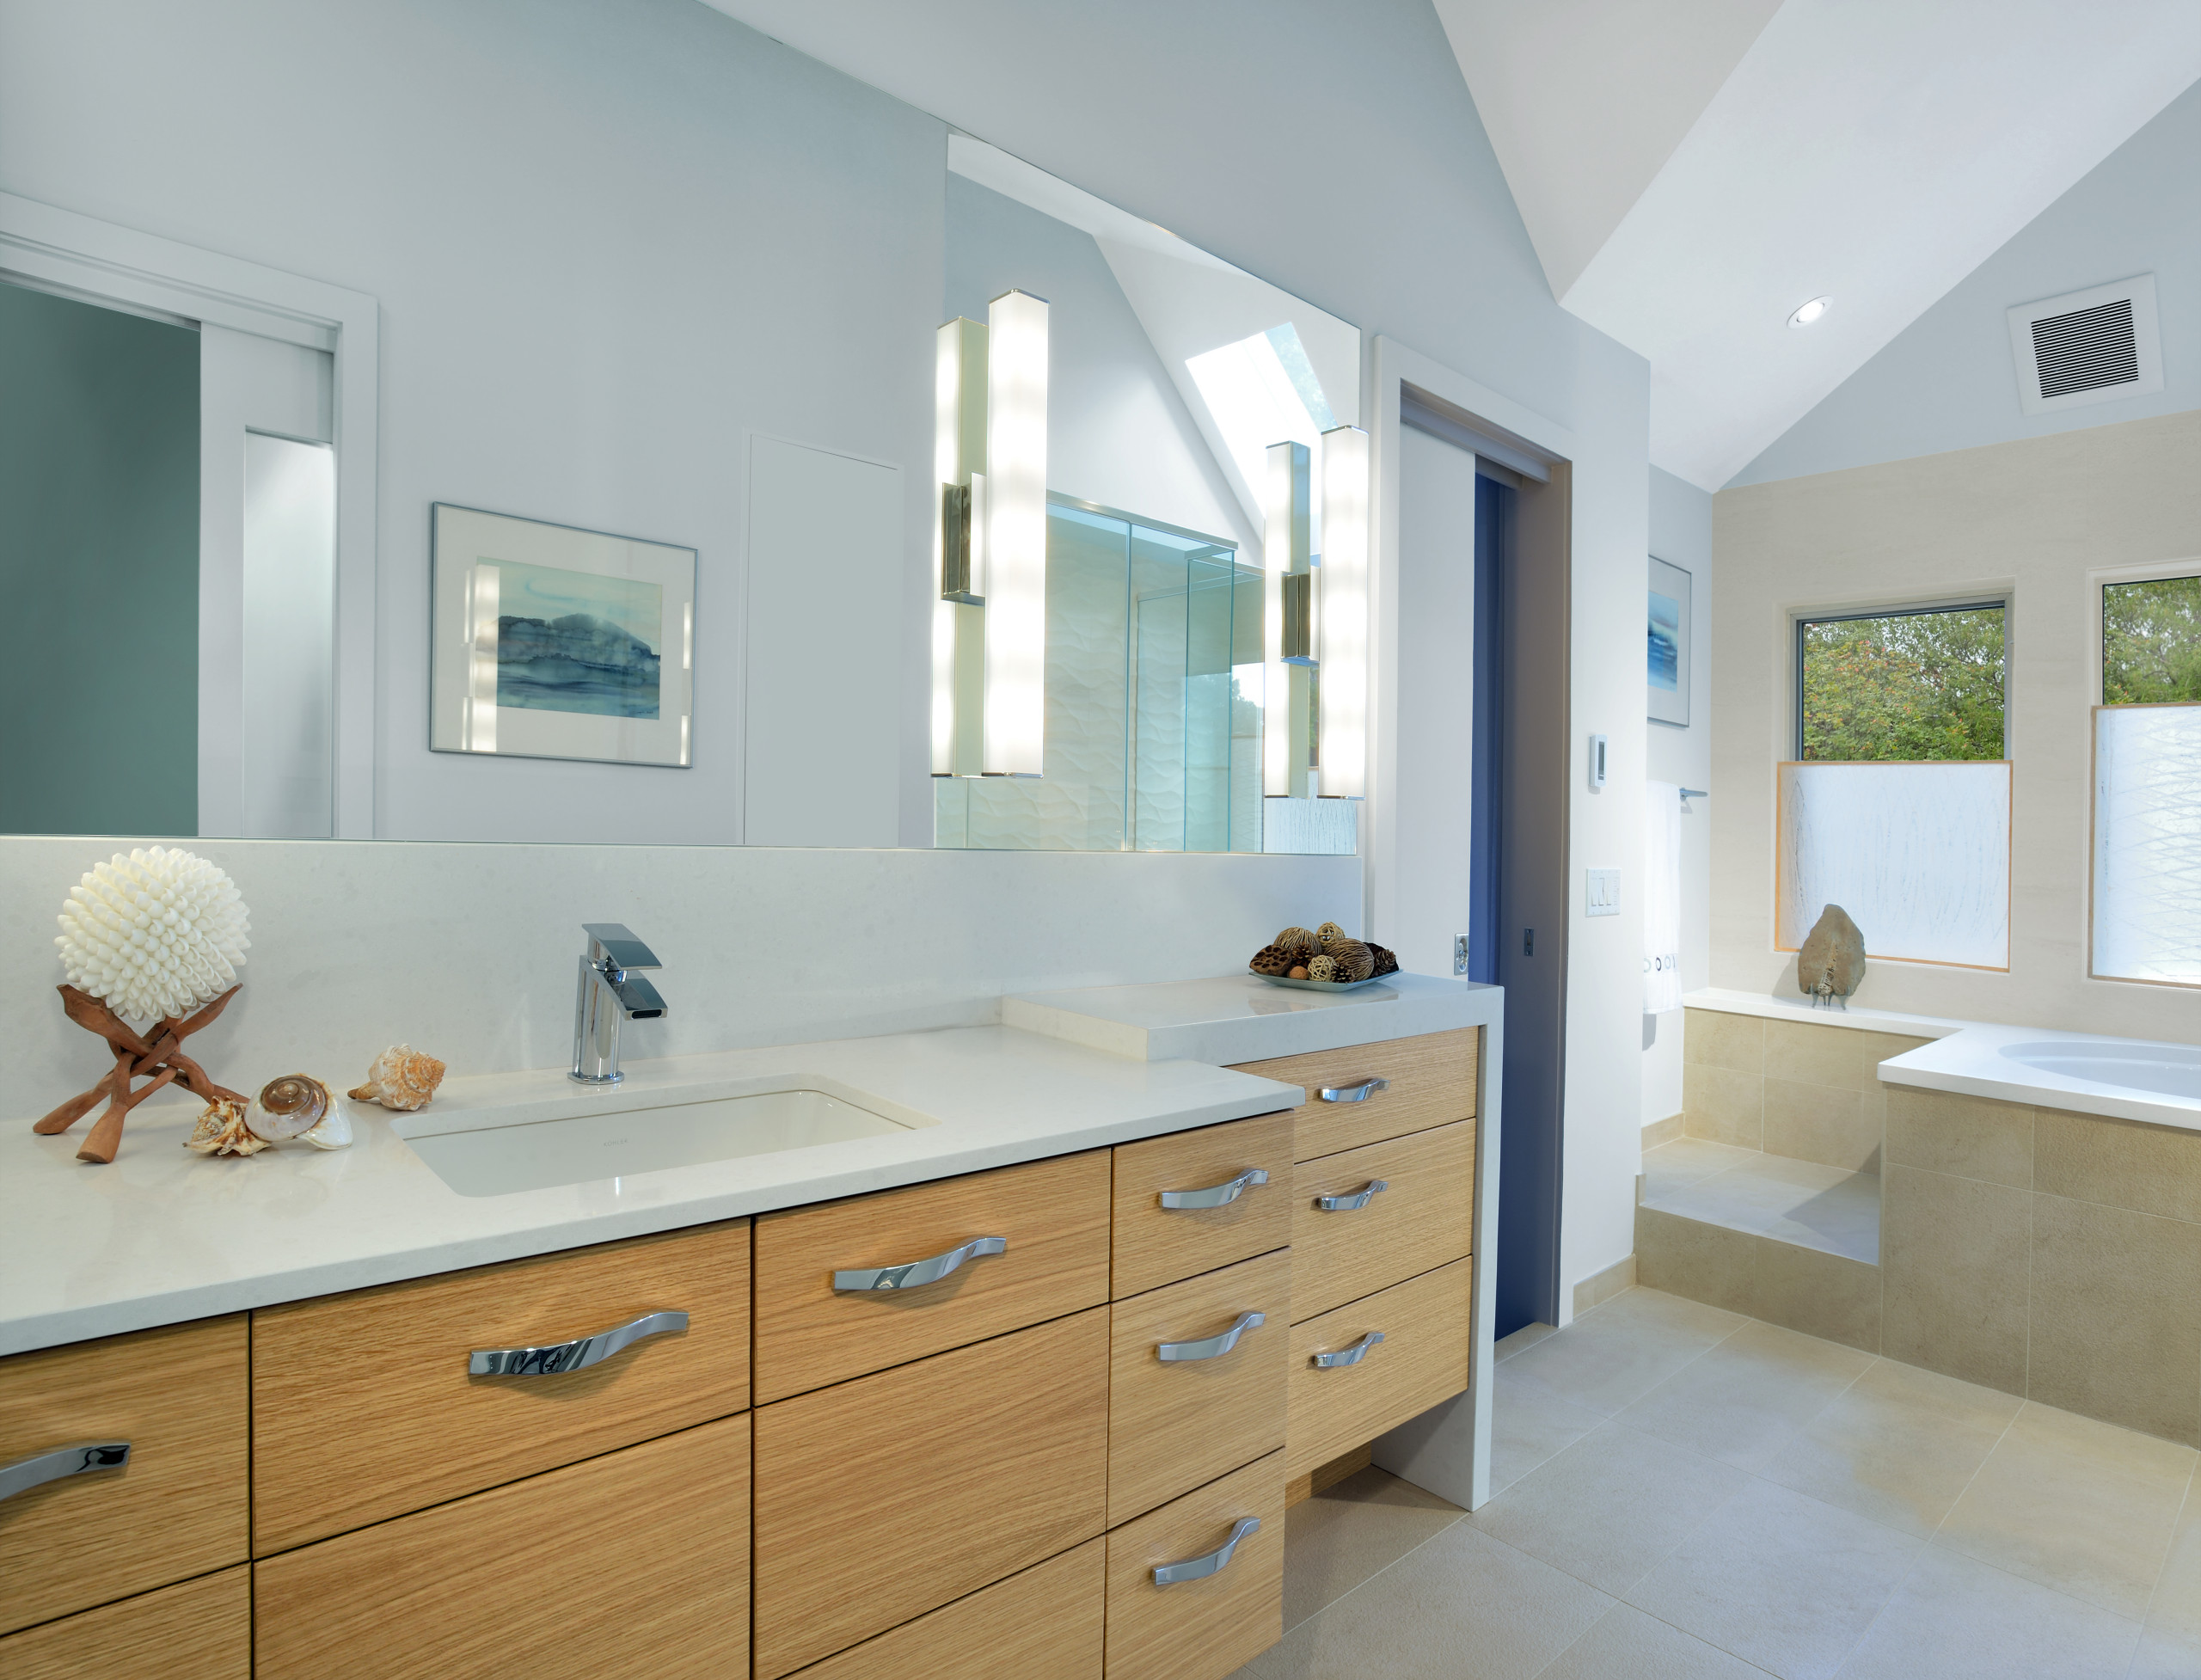 matching faucets with bathroom - simple